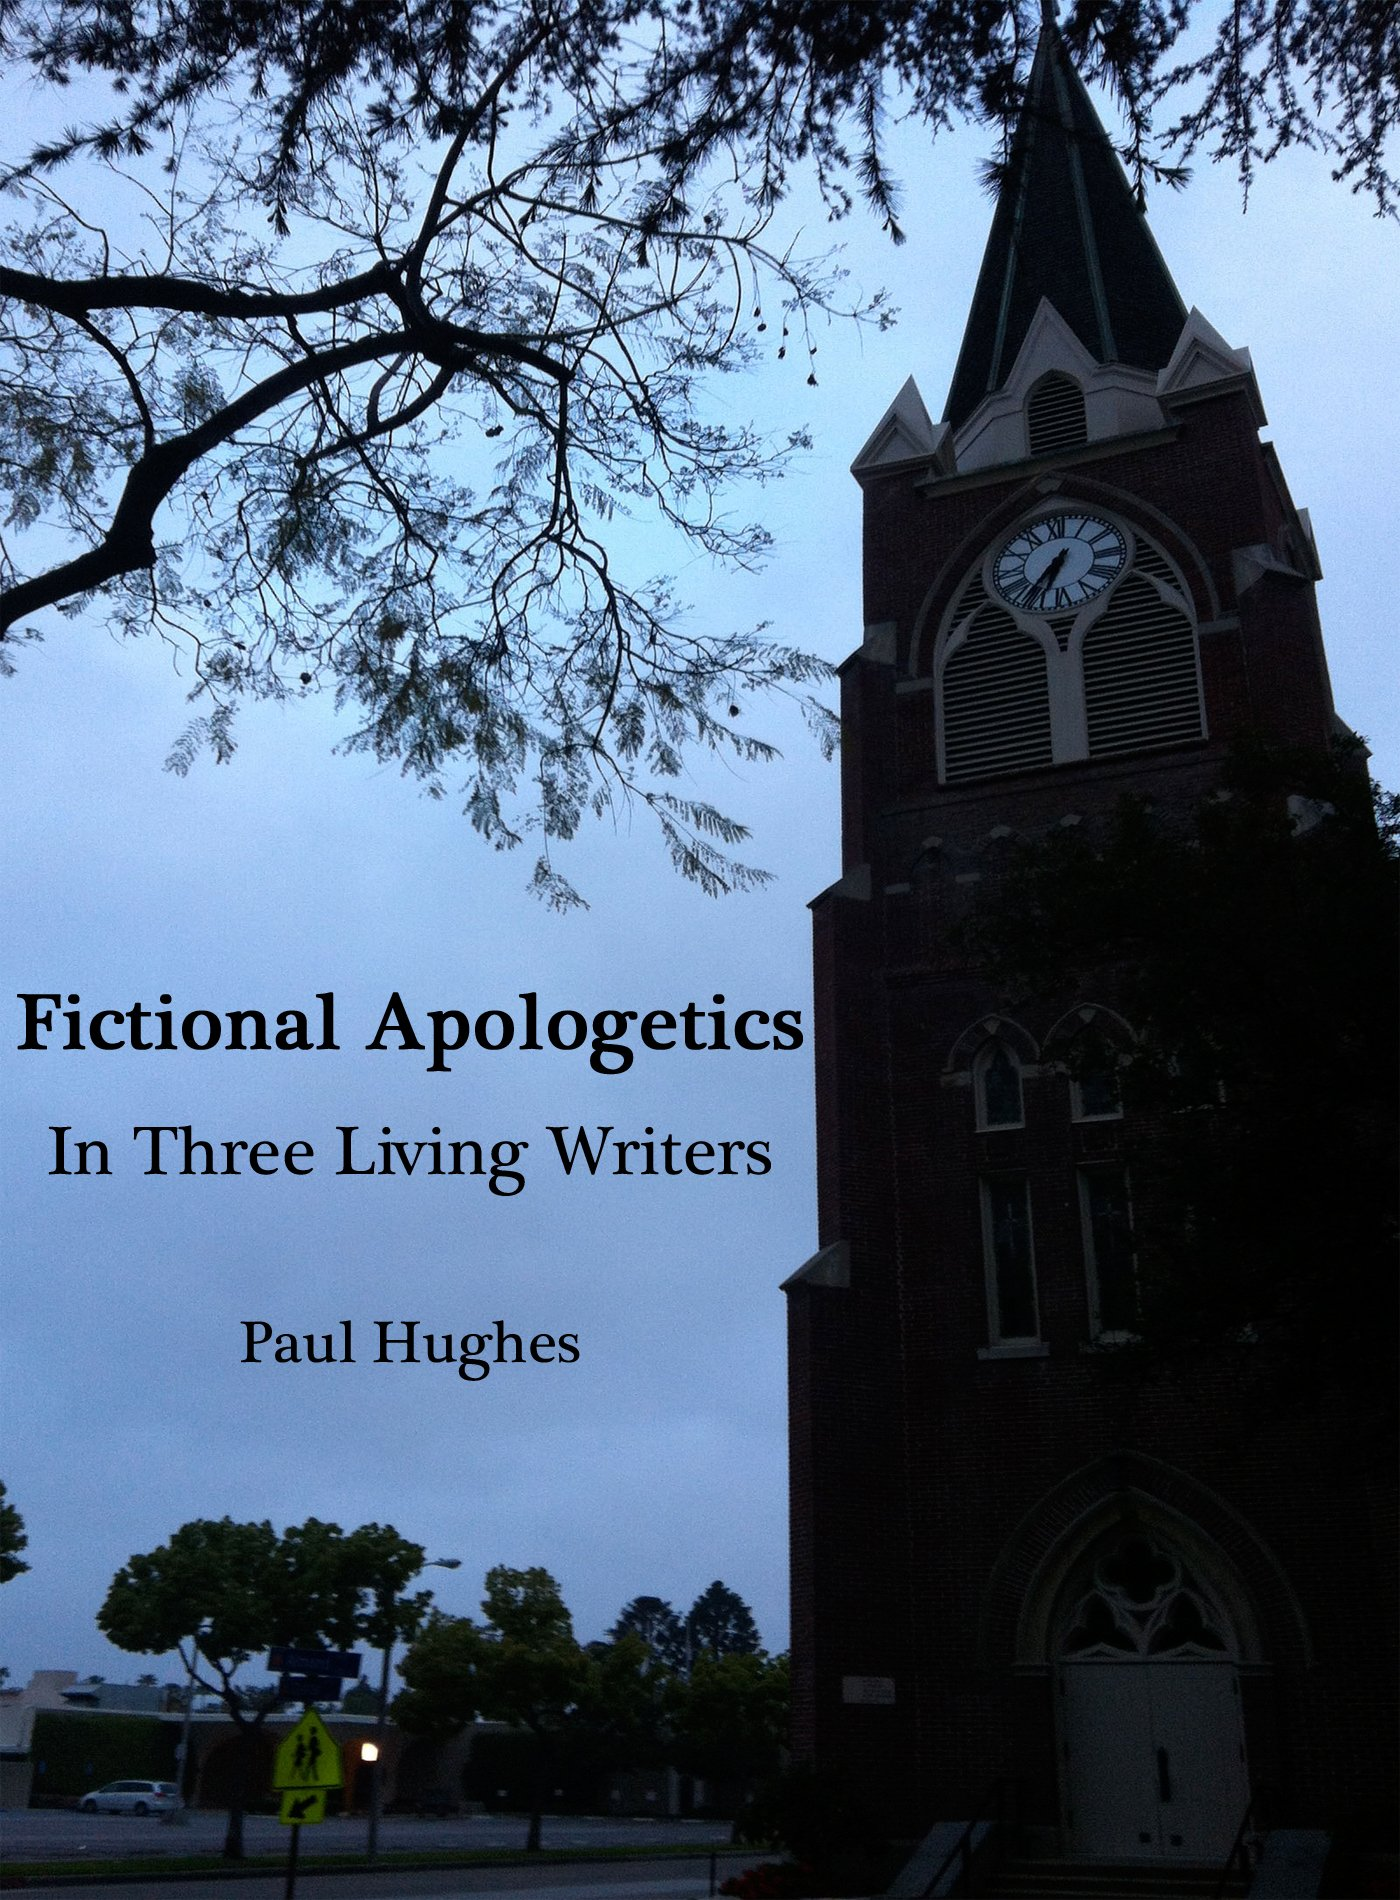 Fictional Apologetics in Three Living Writers